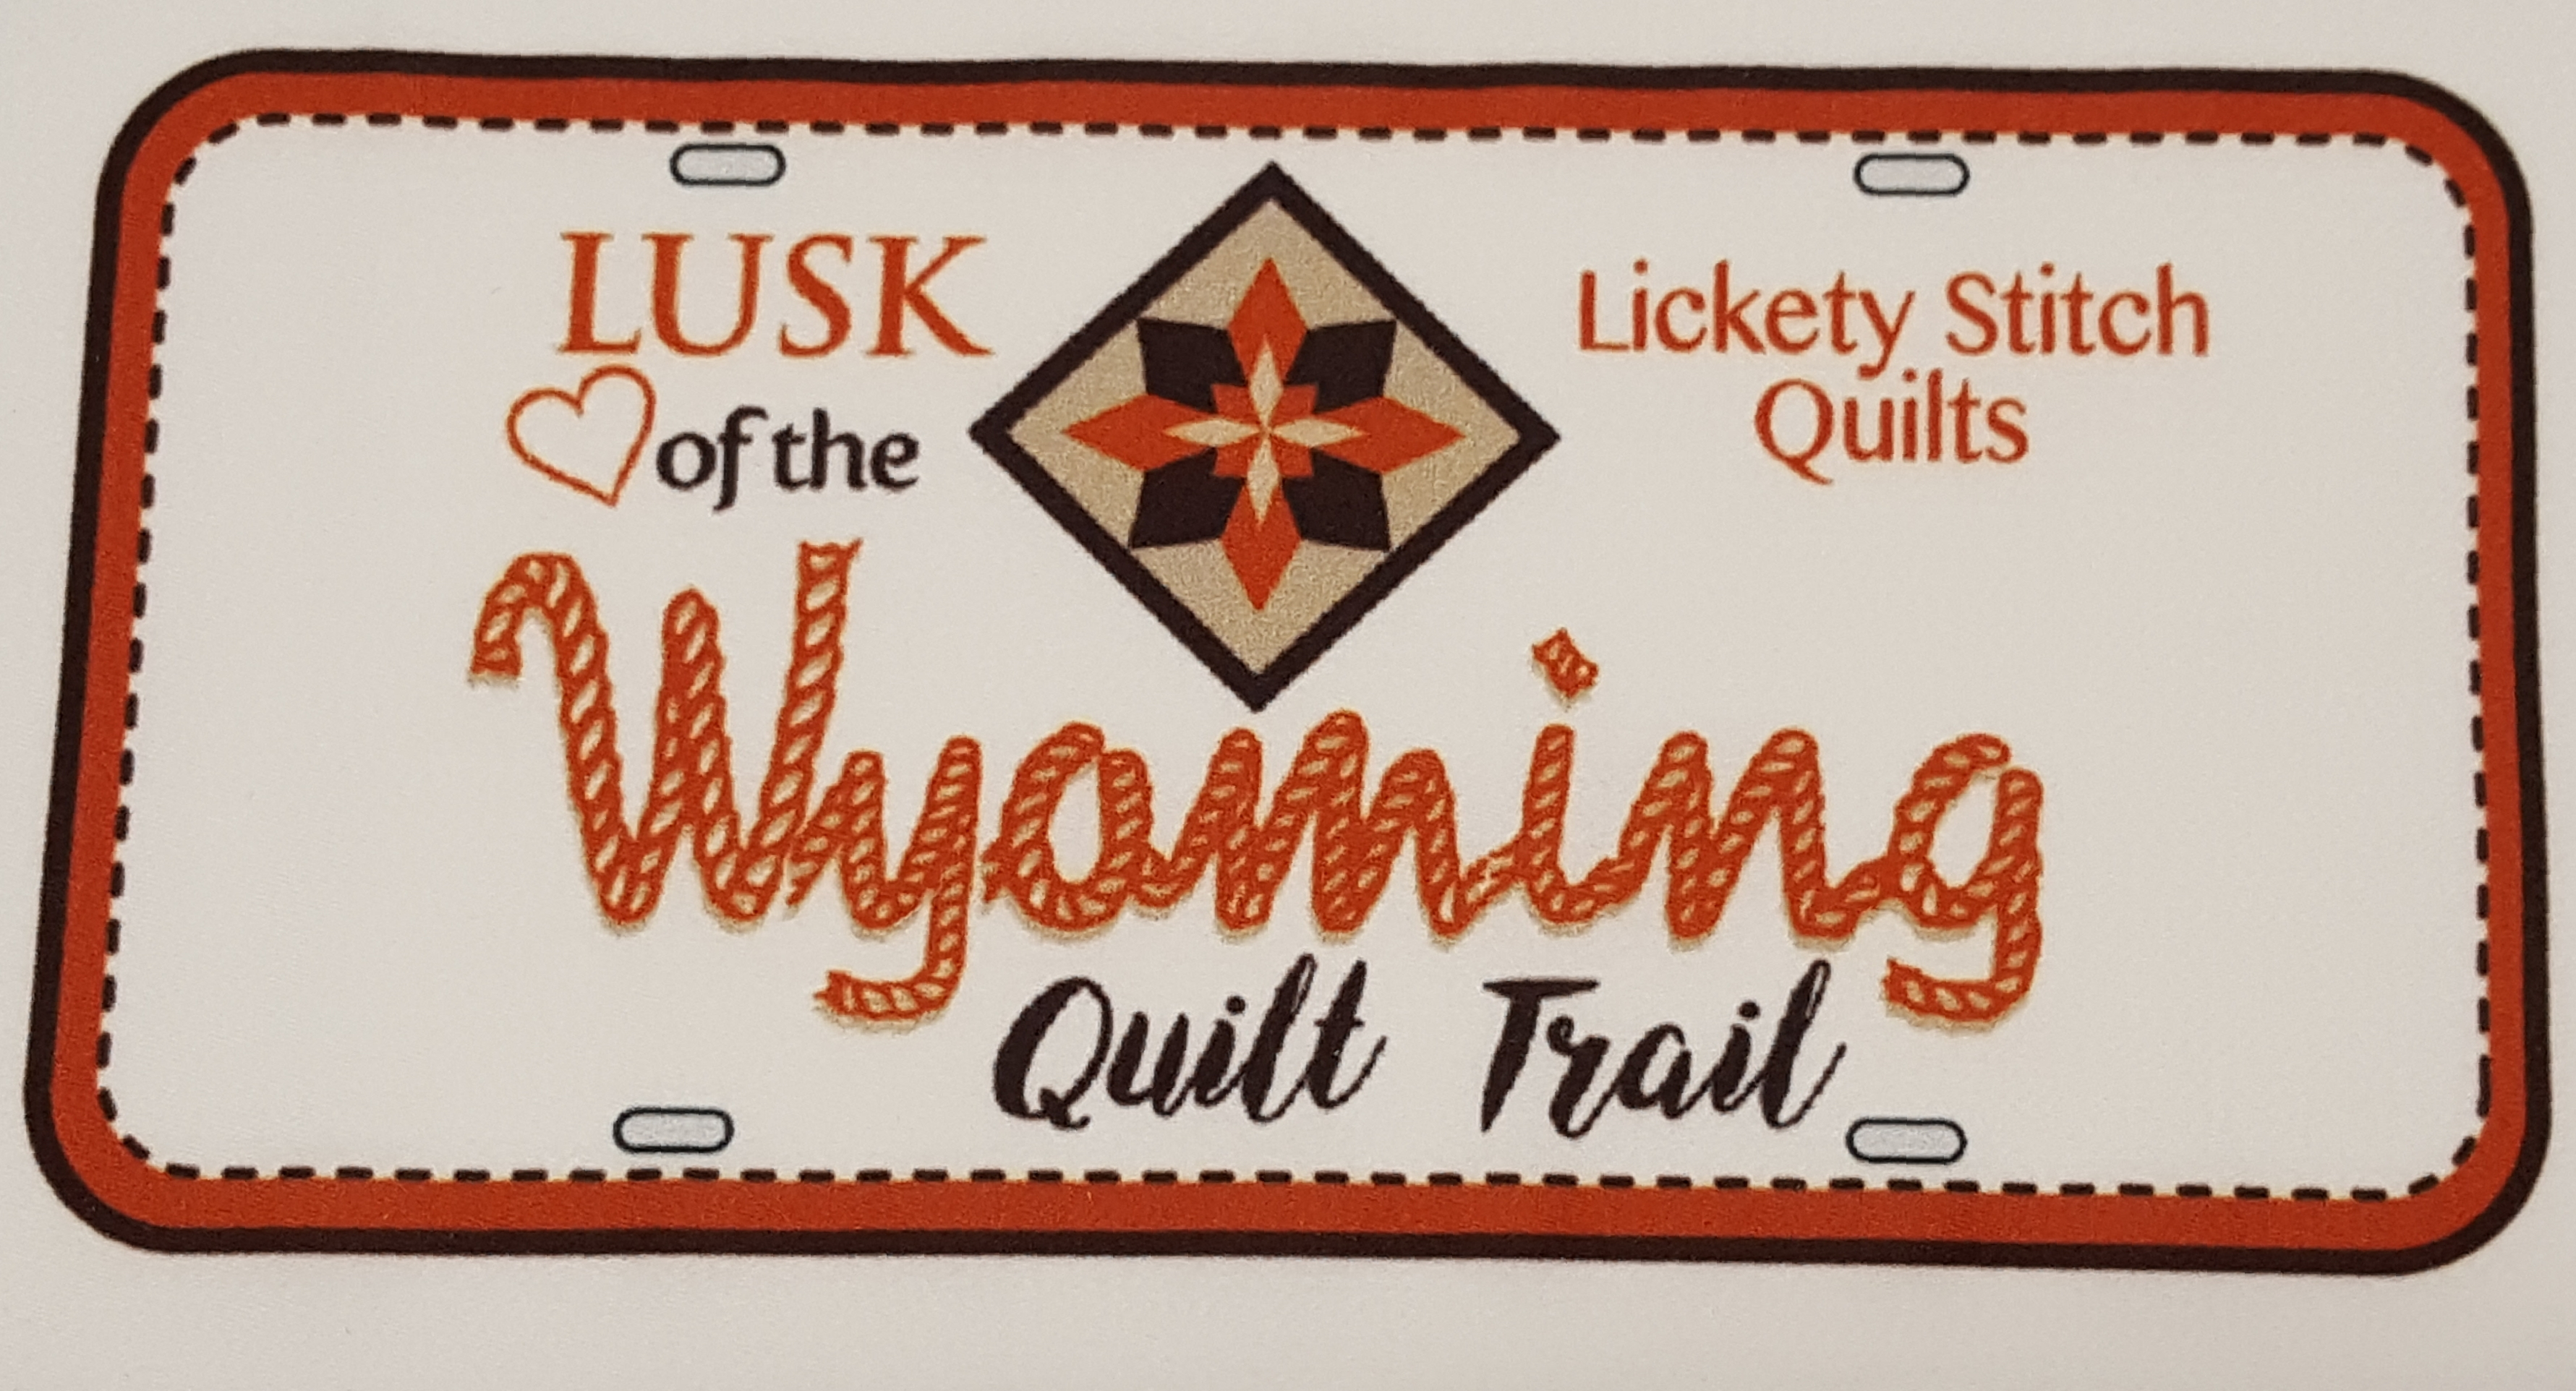 License Plate - Lusk Heart of the Wyoming Quilt Trail 2019